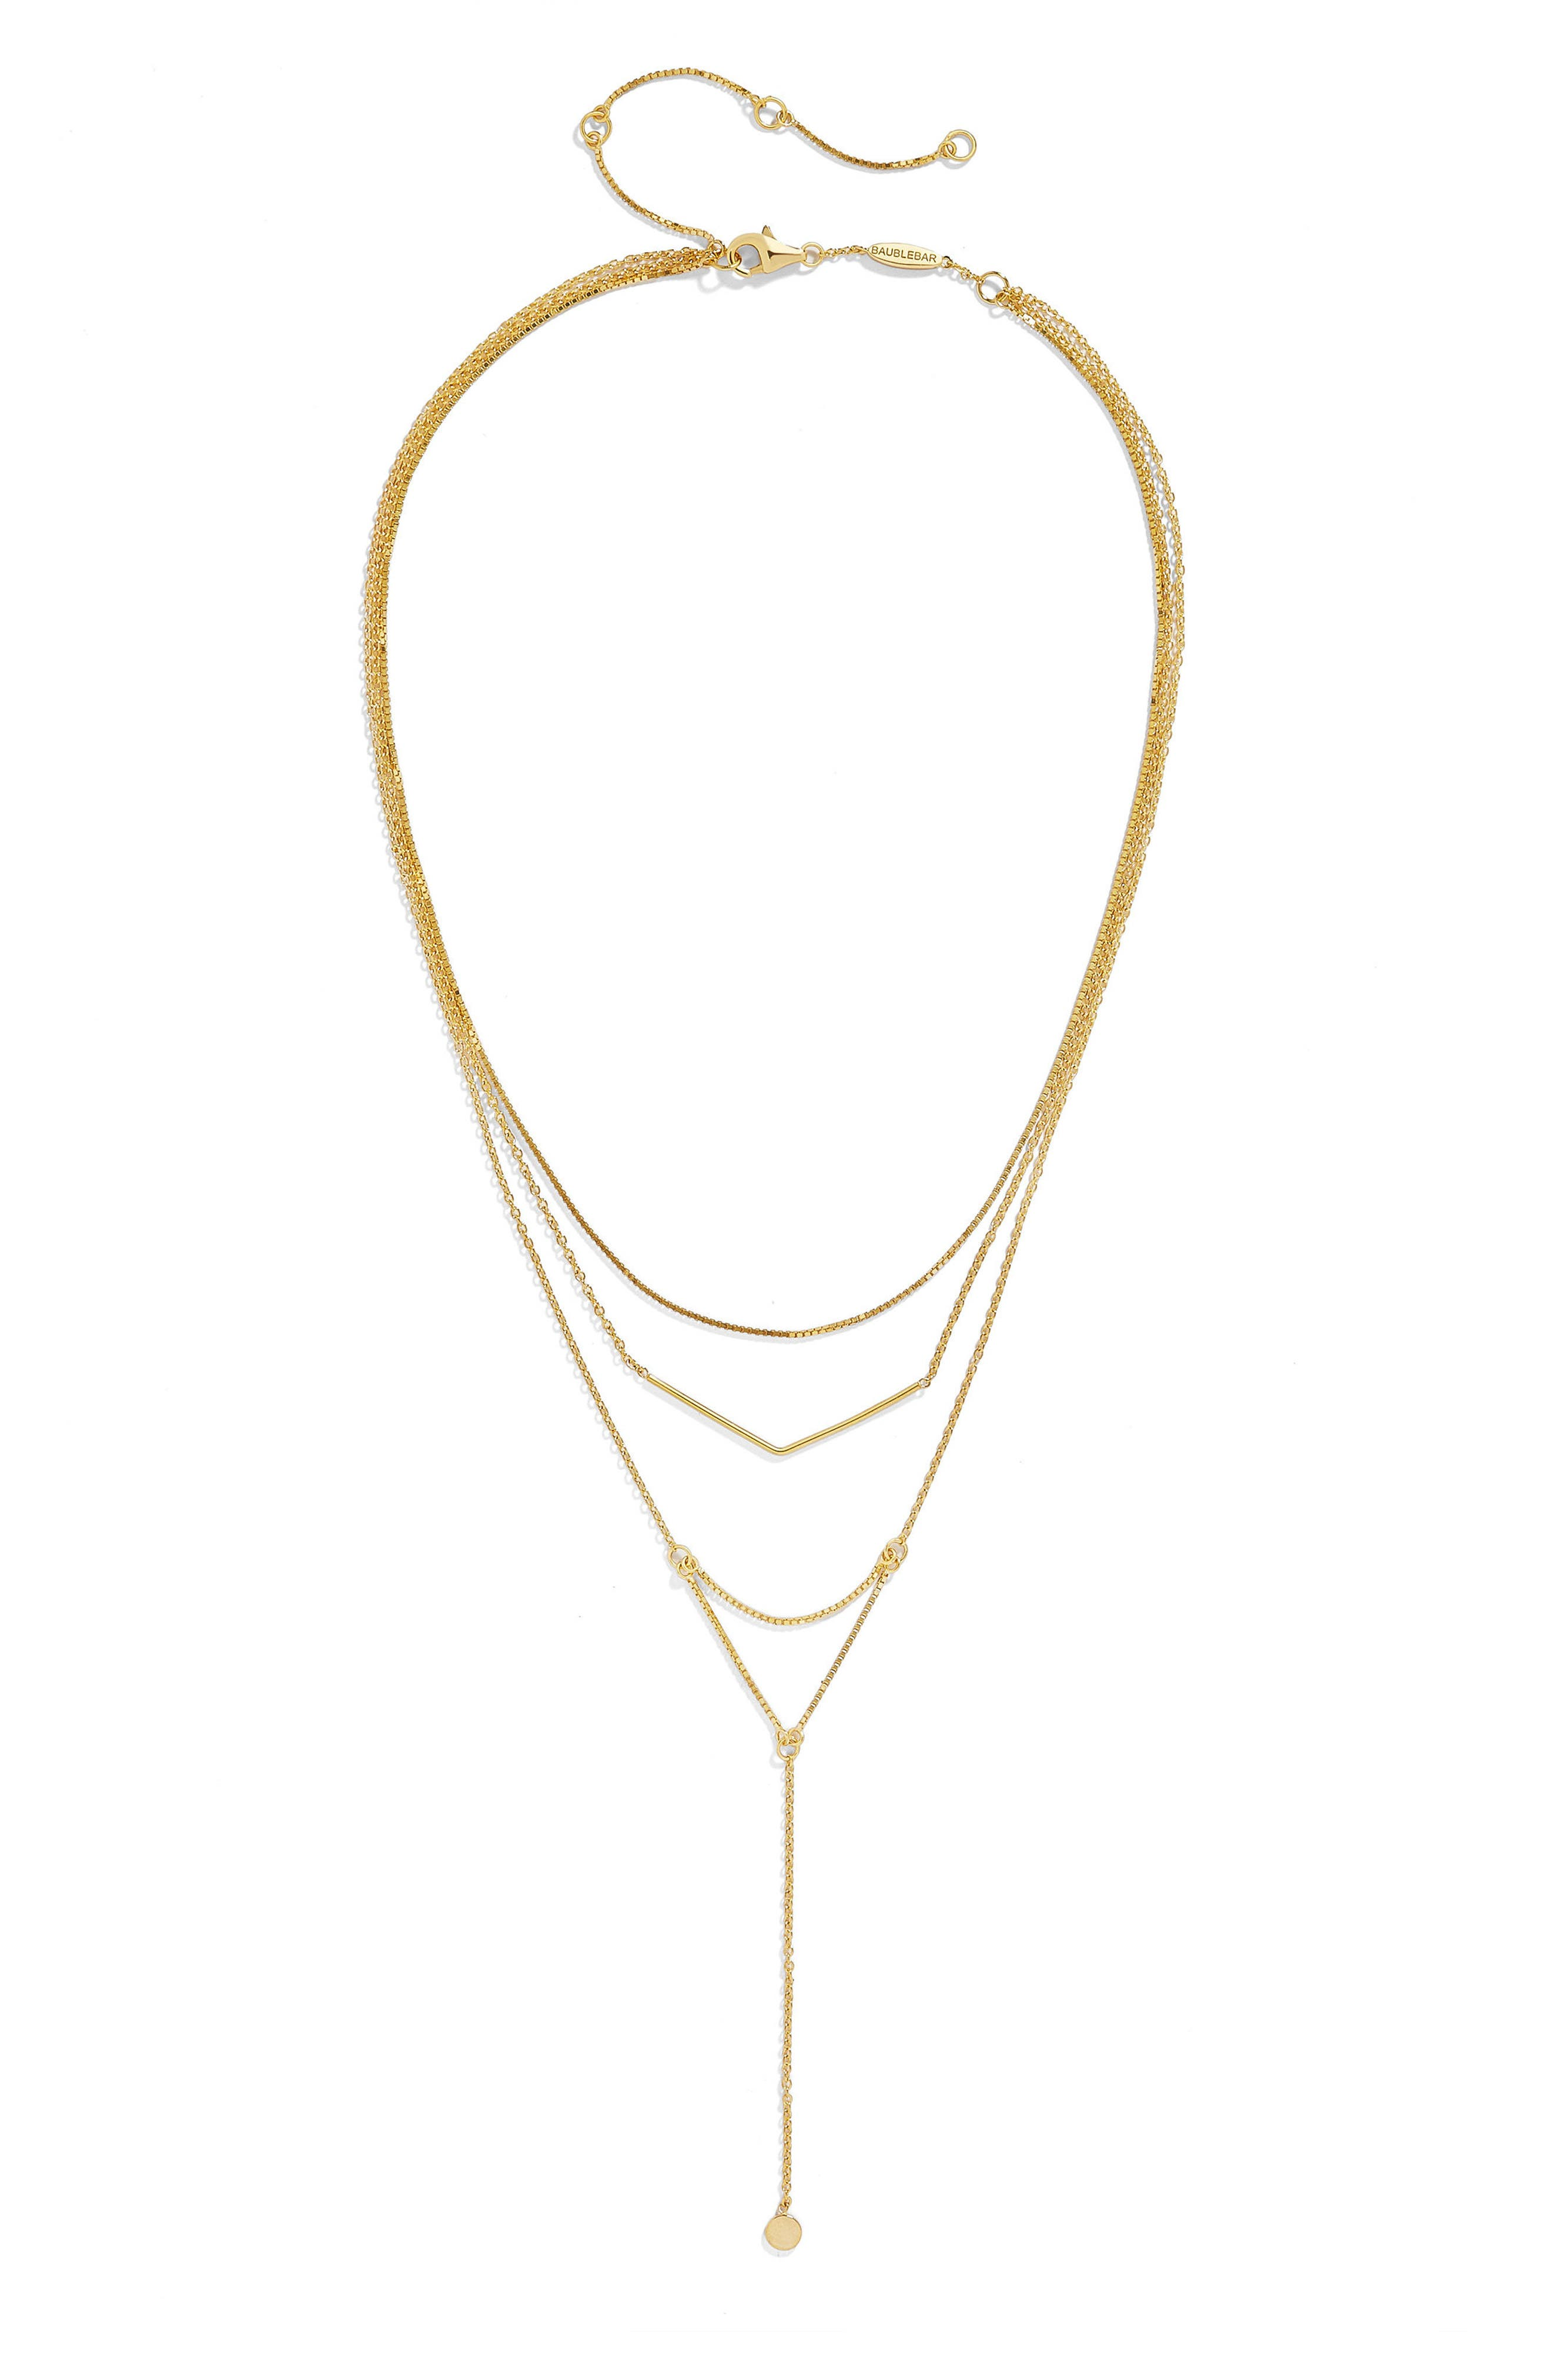 Tris Everyday Connected Y 18-Karat Gold Plate Necklace,                         Main,                         color, 710